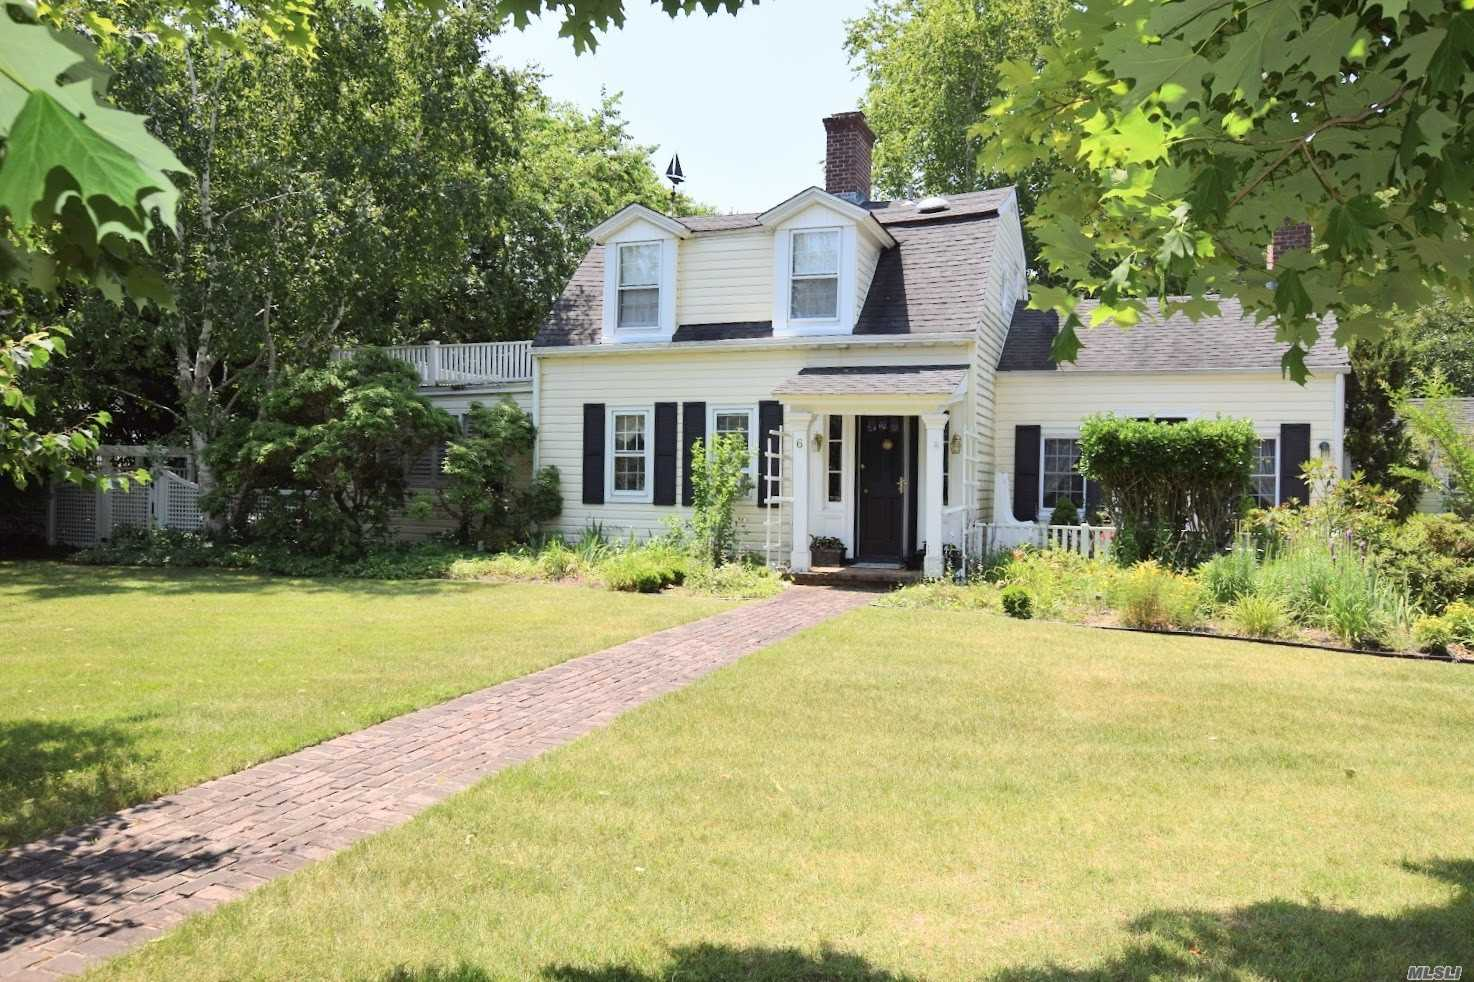 Photo of home for sale at 6 Brewster Ln S, Bellport Village NY